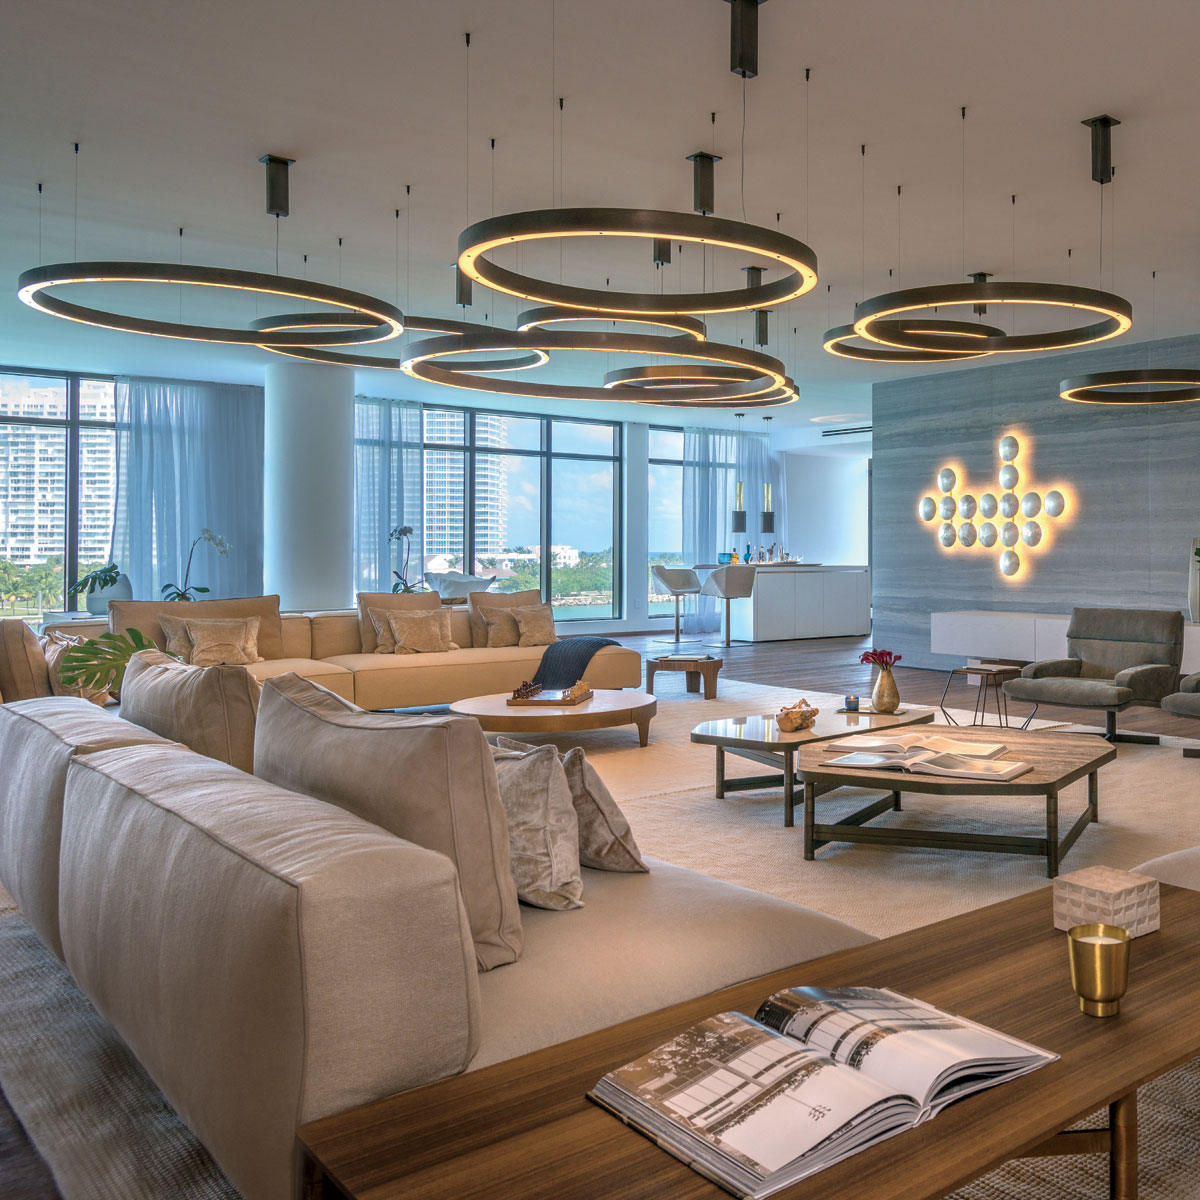 Miami Interior Designers On How They Interpret The Meaning Of High